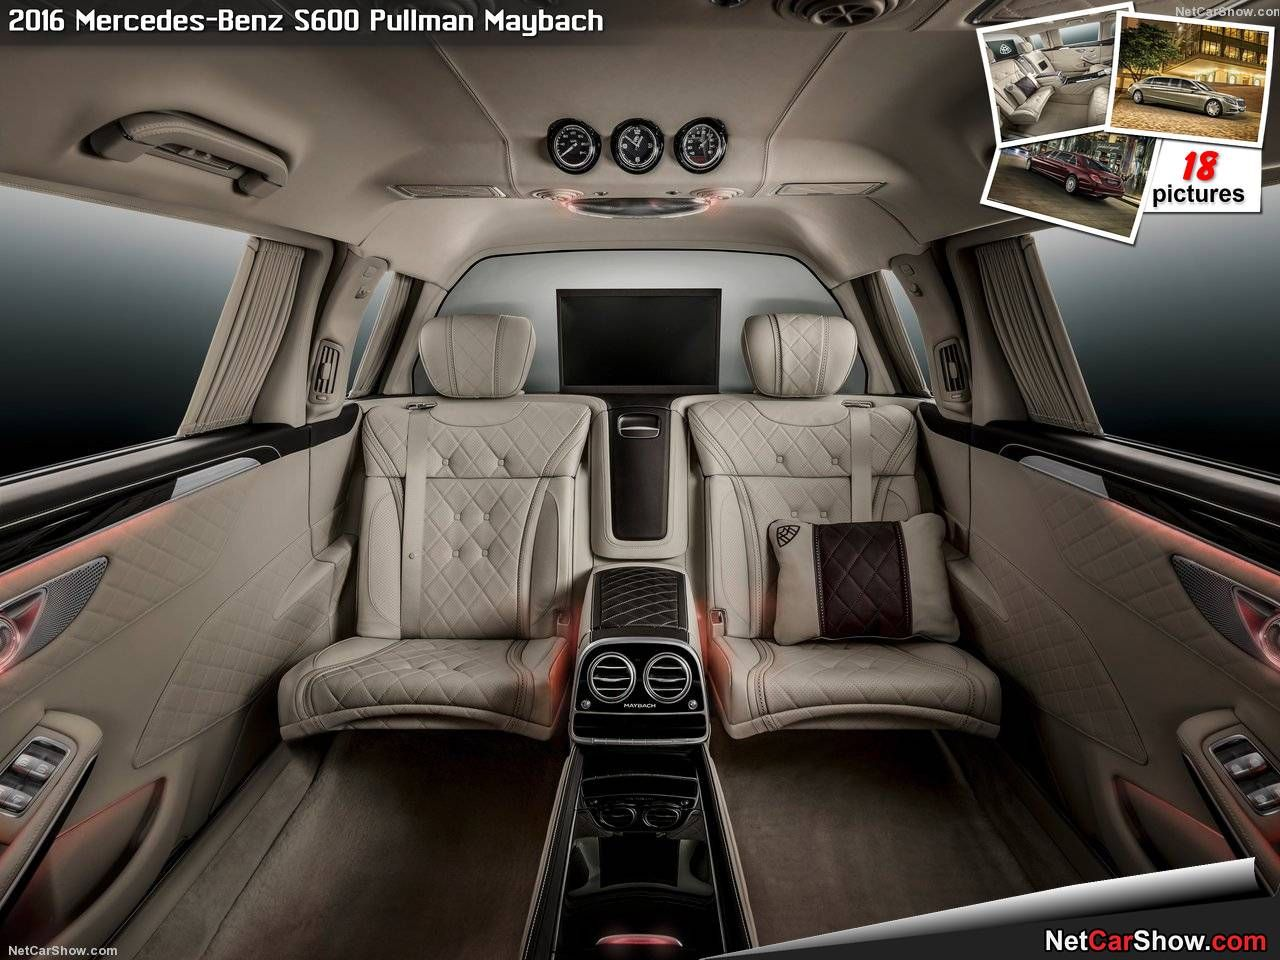 2018 maybach s600 interior. brilliant s600 mercedesbenz s600 pullman maybach 2016  picture 16 of 18 interior and 2018 maybach s600 interior